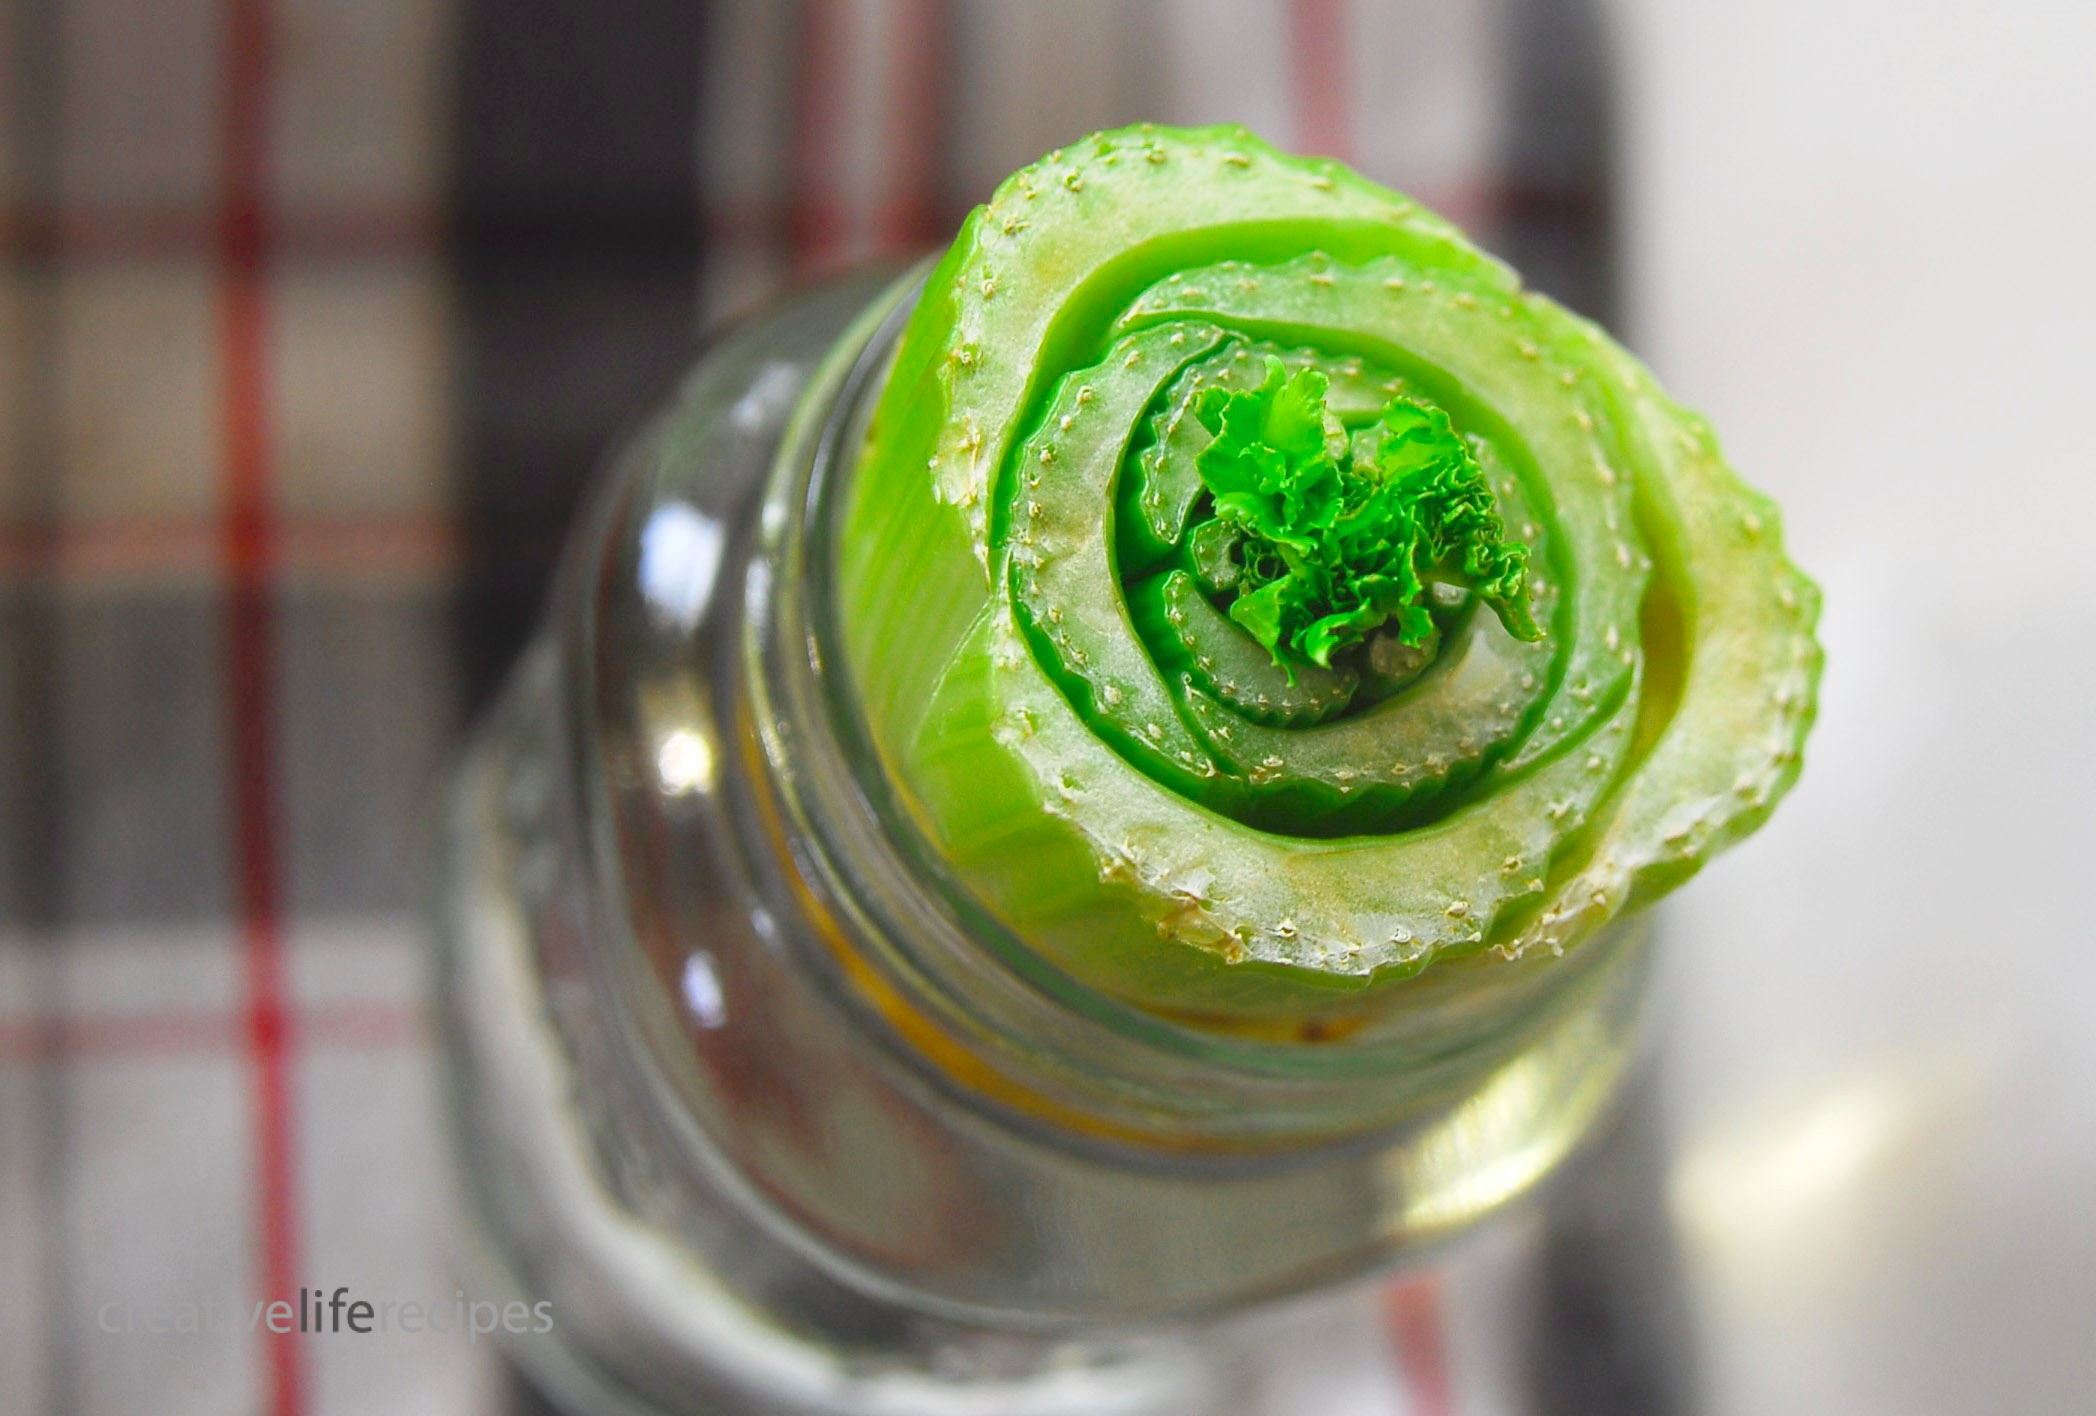 Regrow Celery Top 1 Week Creative Life Recipes